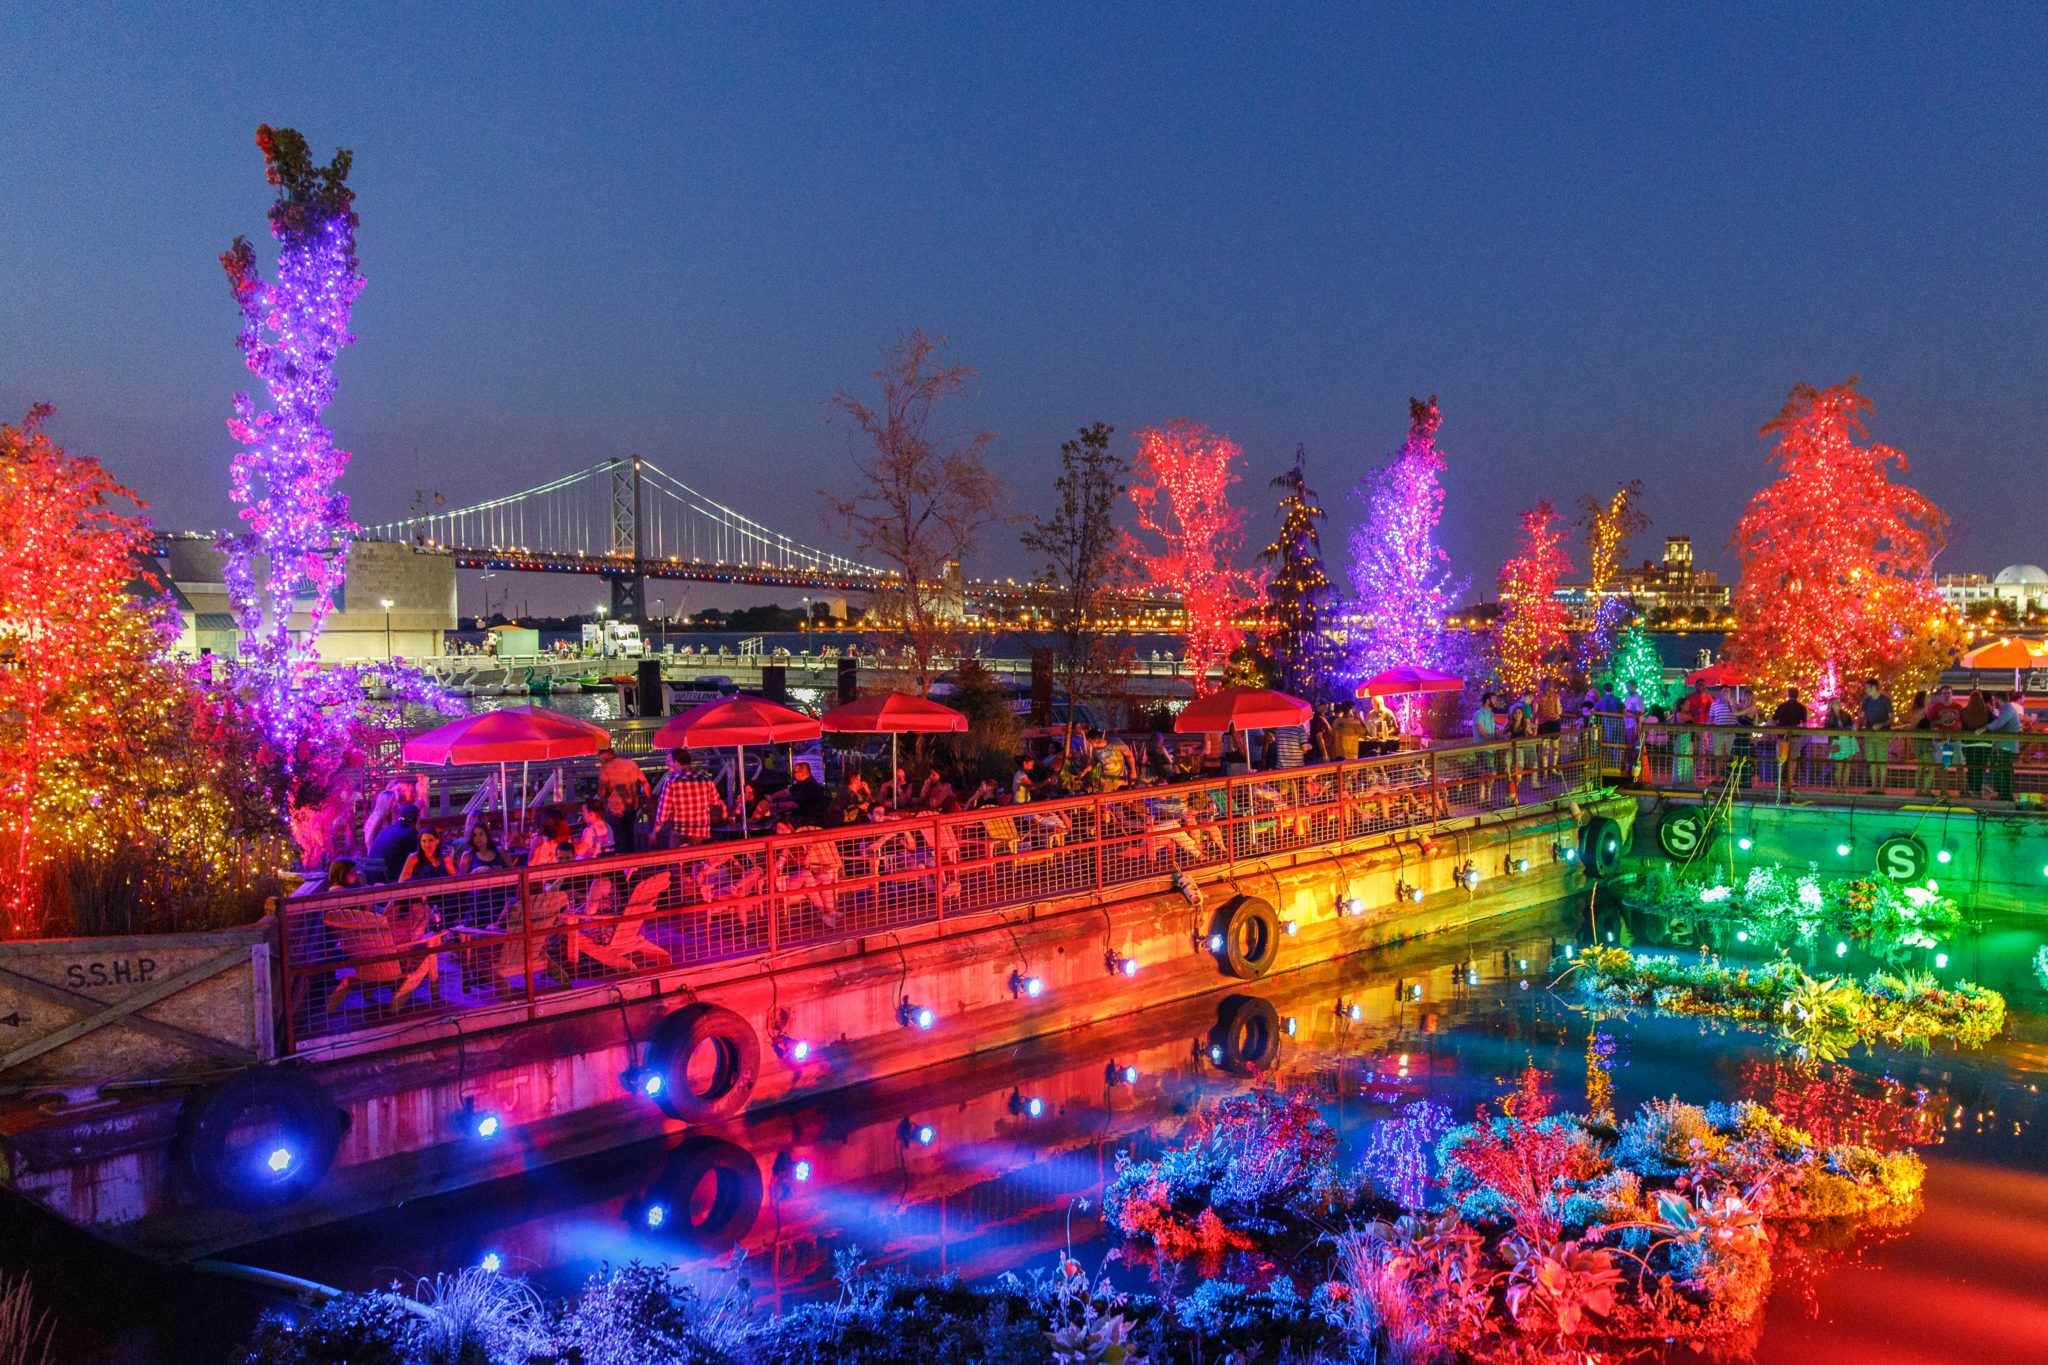 The floating barges at Spruce Street Harbor Park by Matt Stanley